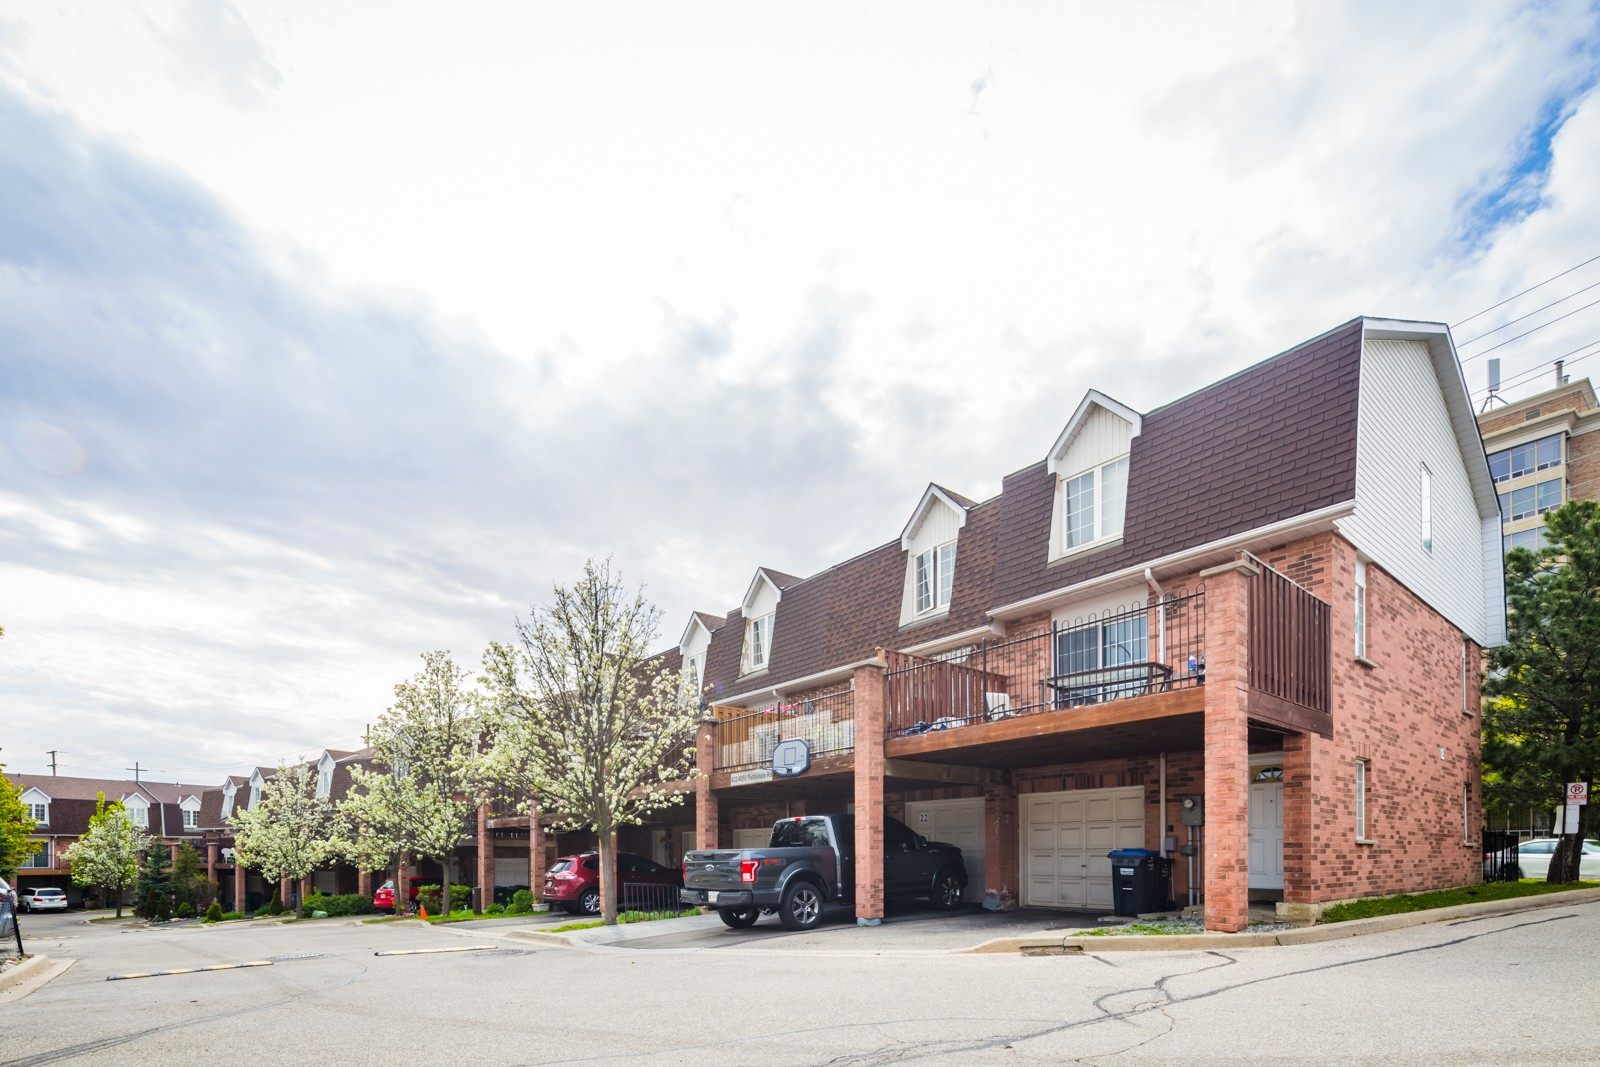 4950 Rathekeale Rd Townhouses at 4950 Rathkeale Rd, Mississauga 1